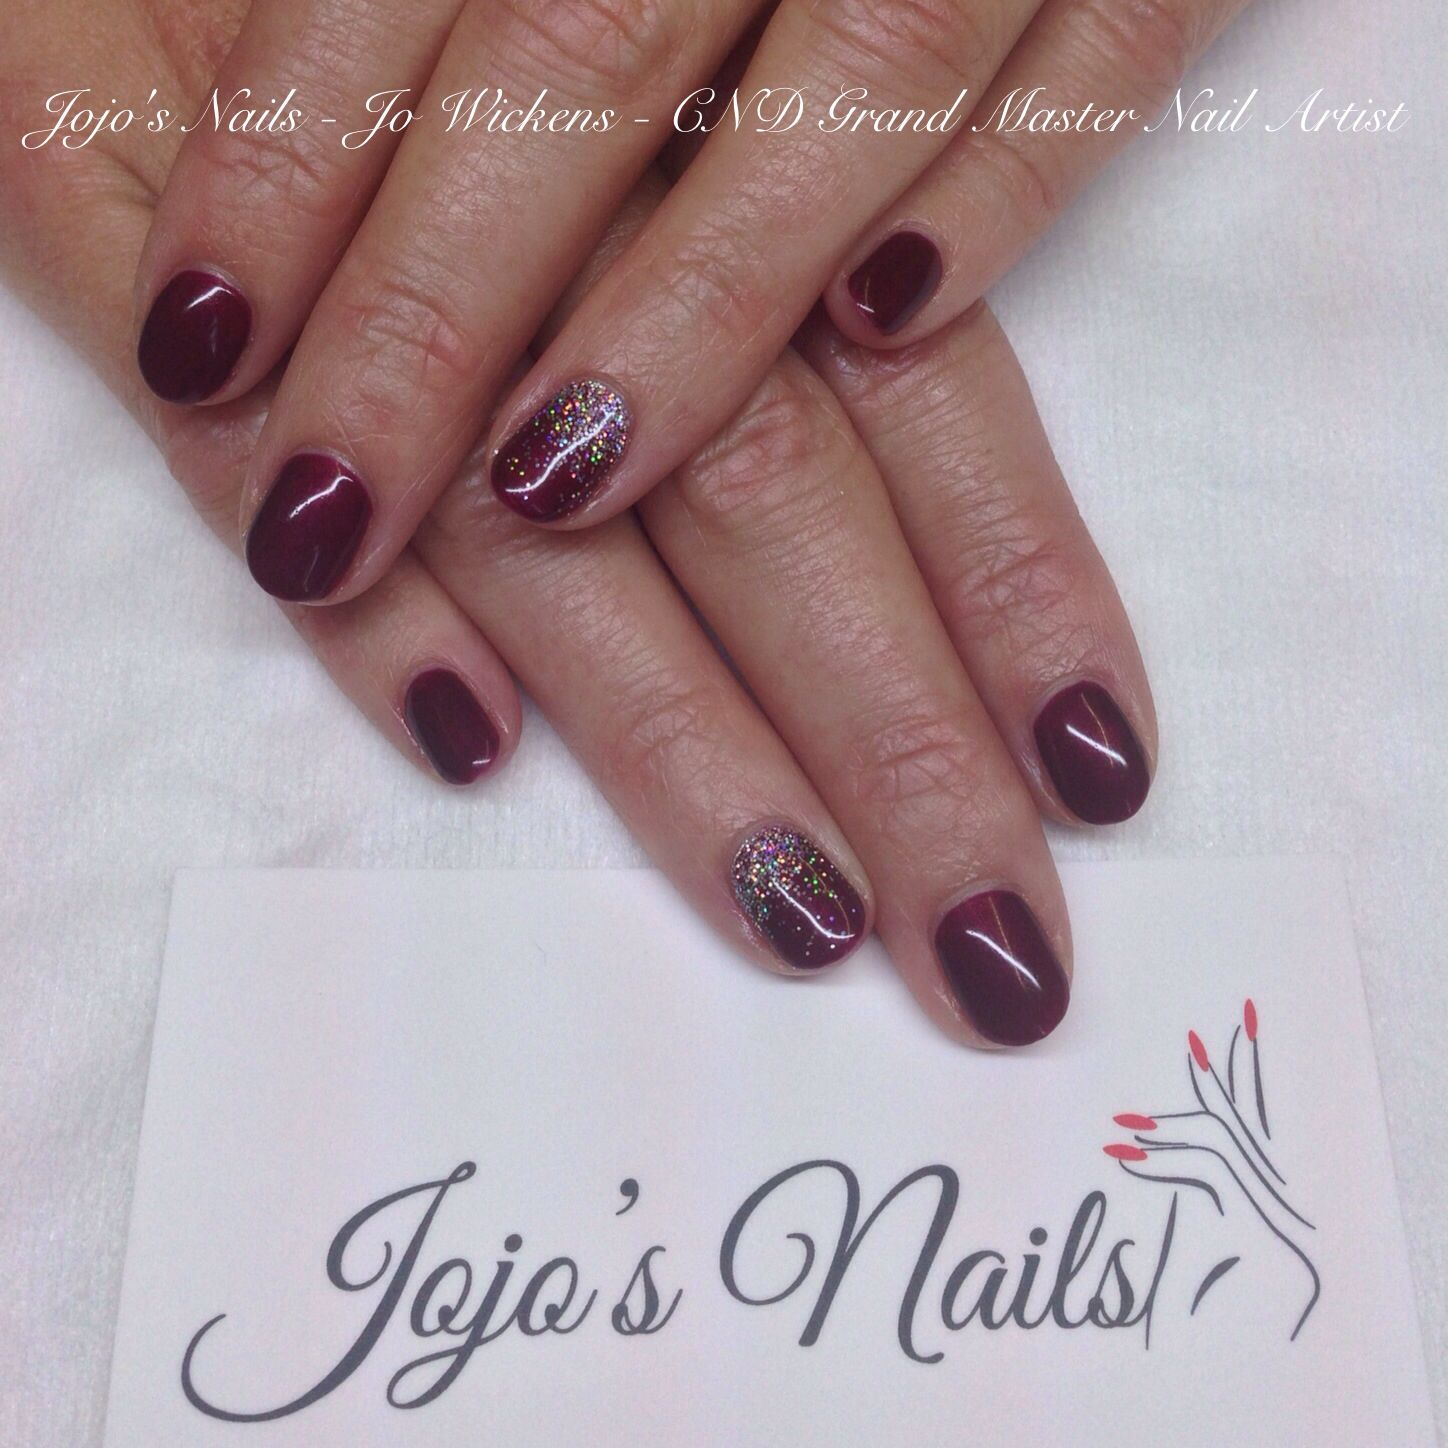 CND Shellac Manicure with glitter fade accent nails - By Jo Wickens @ Jojo's Nails - www.jojosnails.com